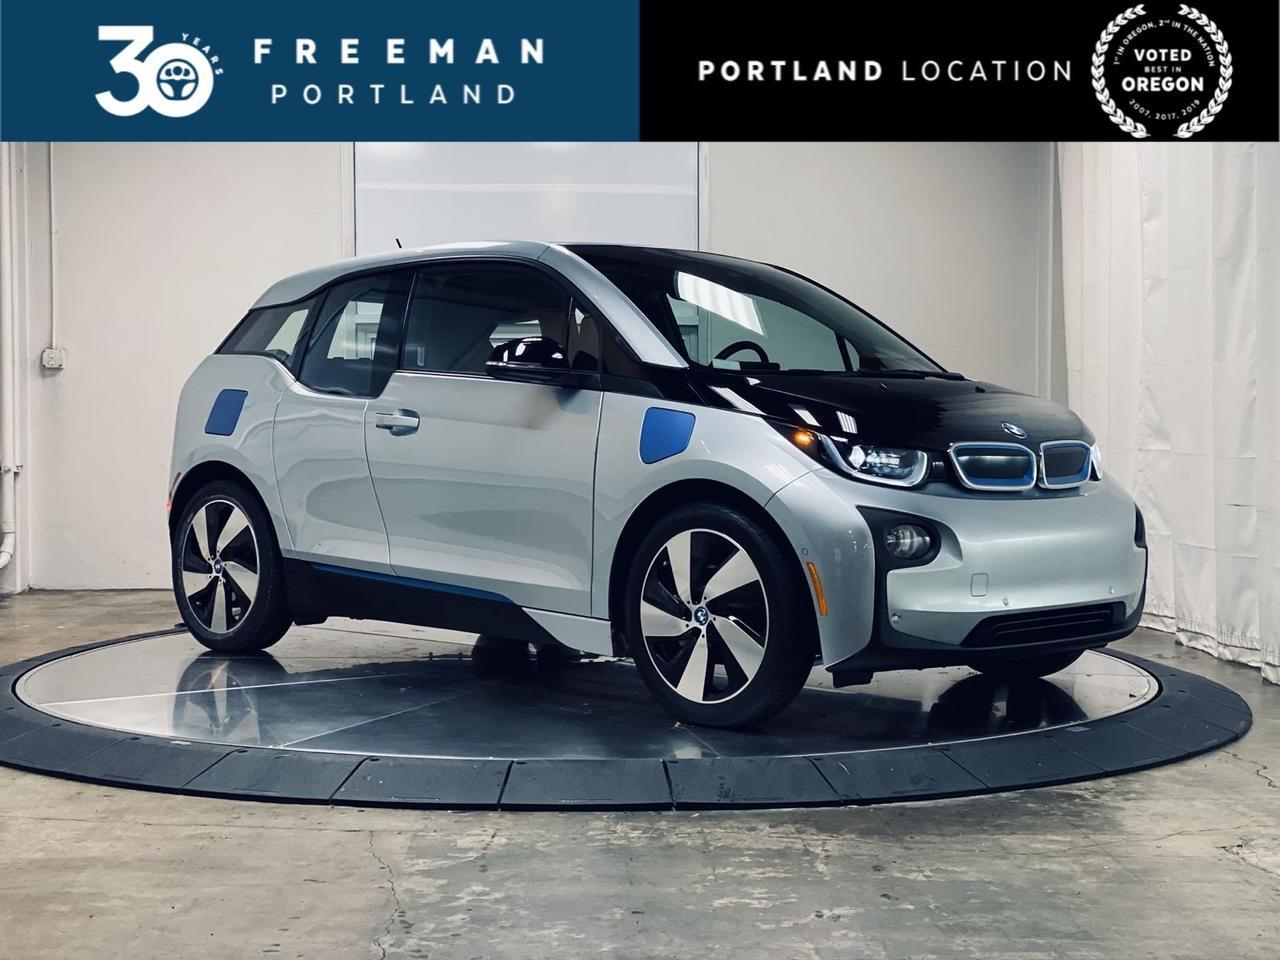 2017 BMW i3 Adaptive Cruise Stop & Go Parking Assist Portland OR